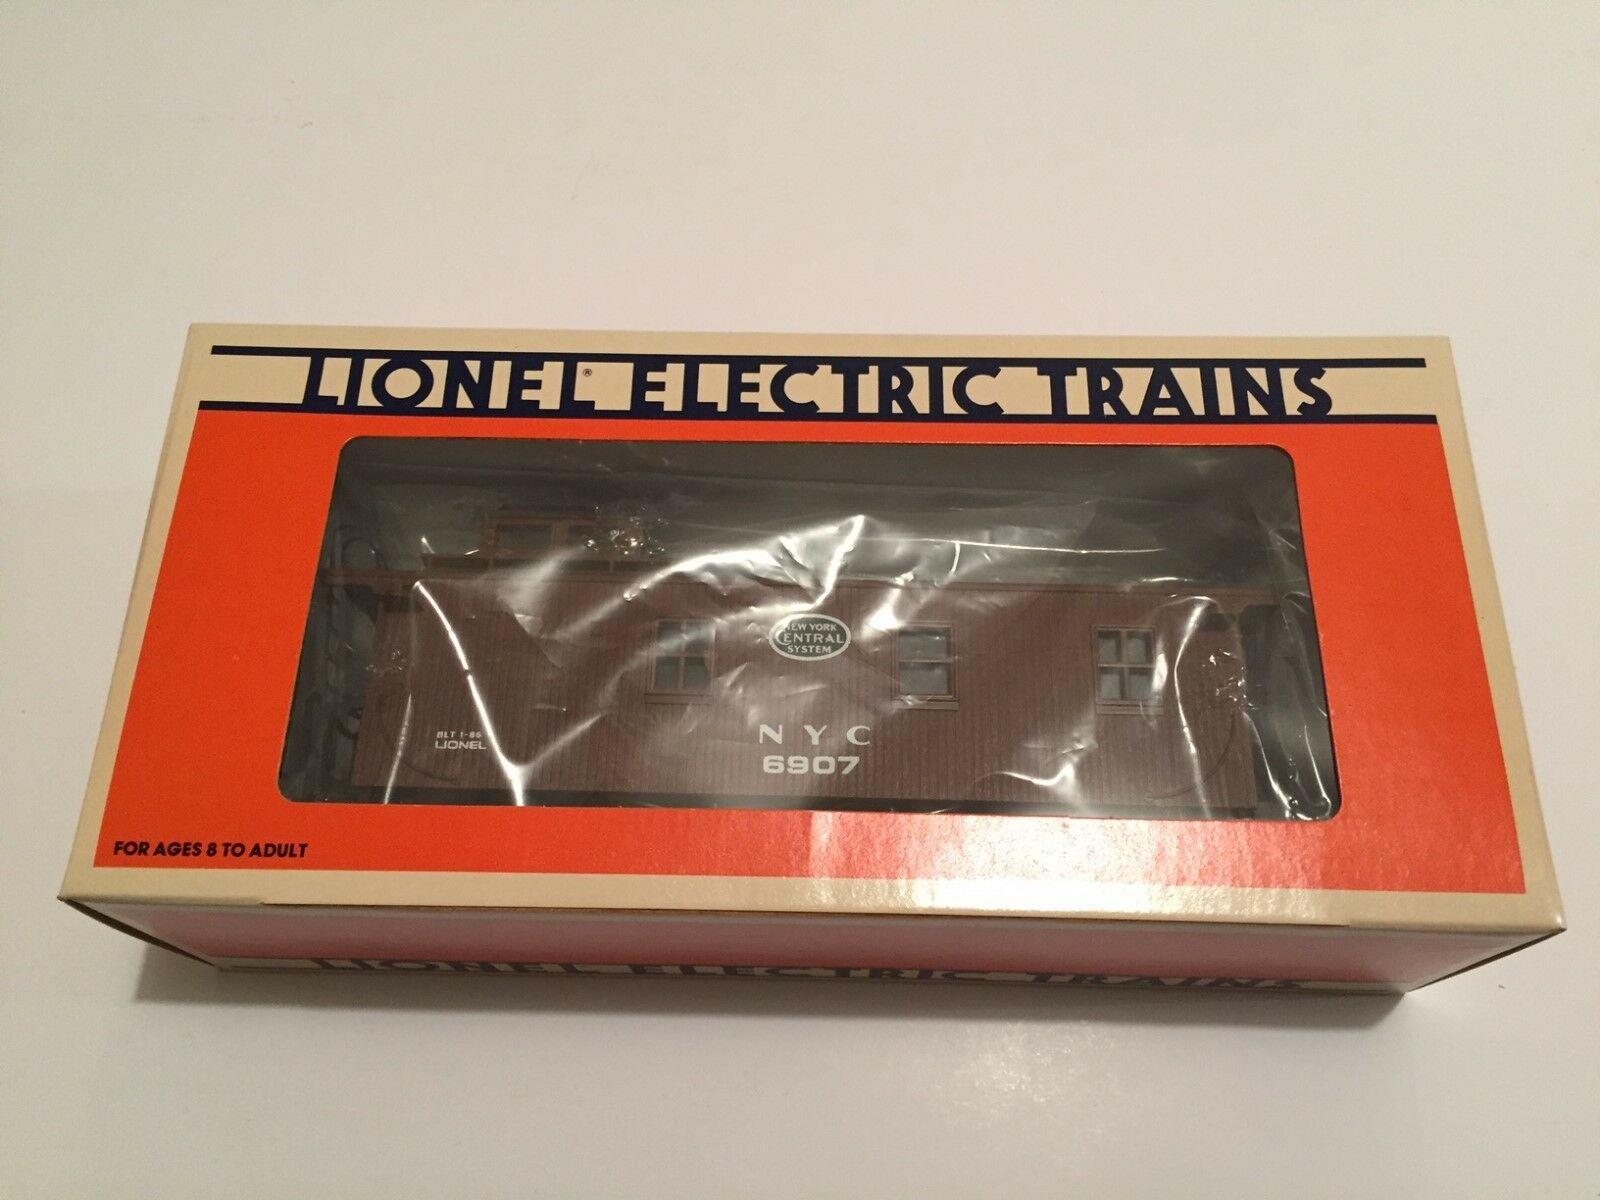 Lionel New York Central Caboose in the original shipping box